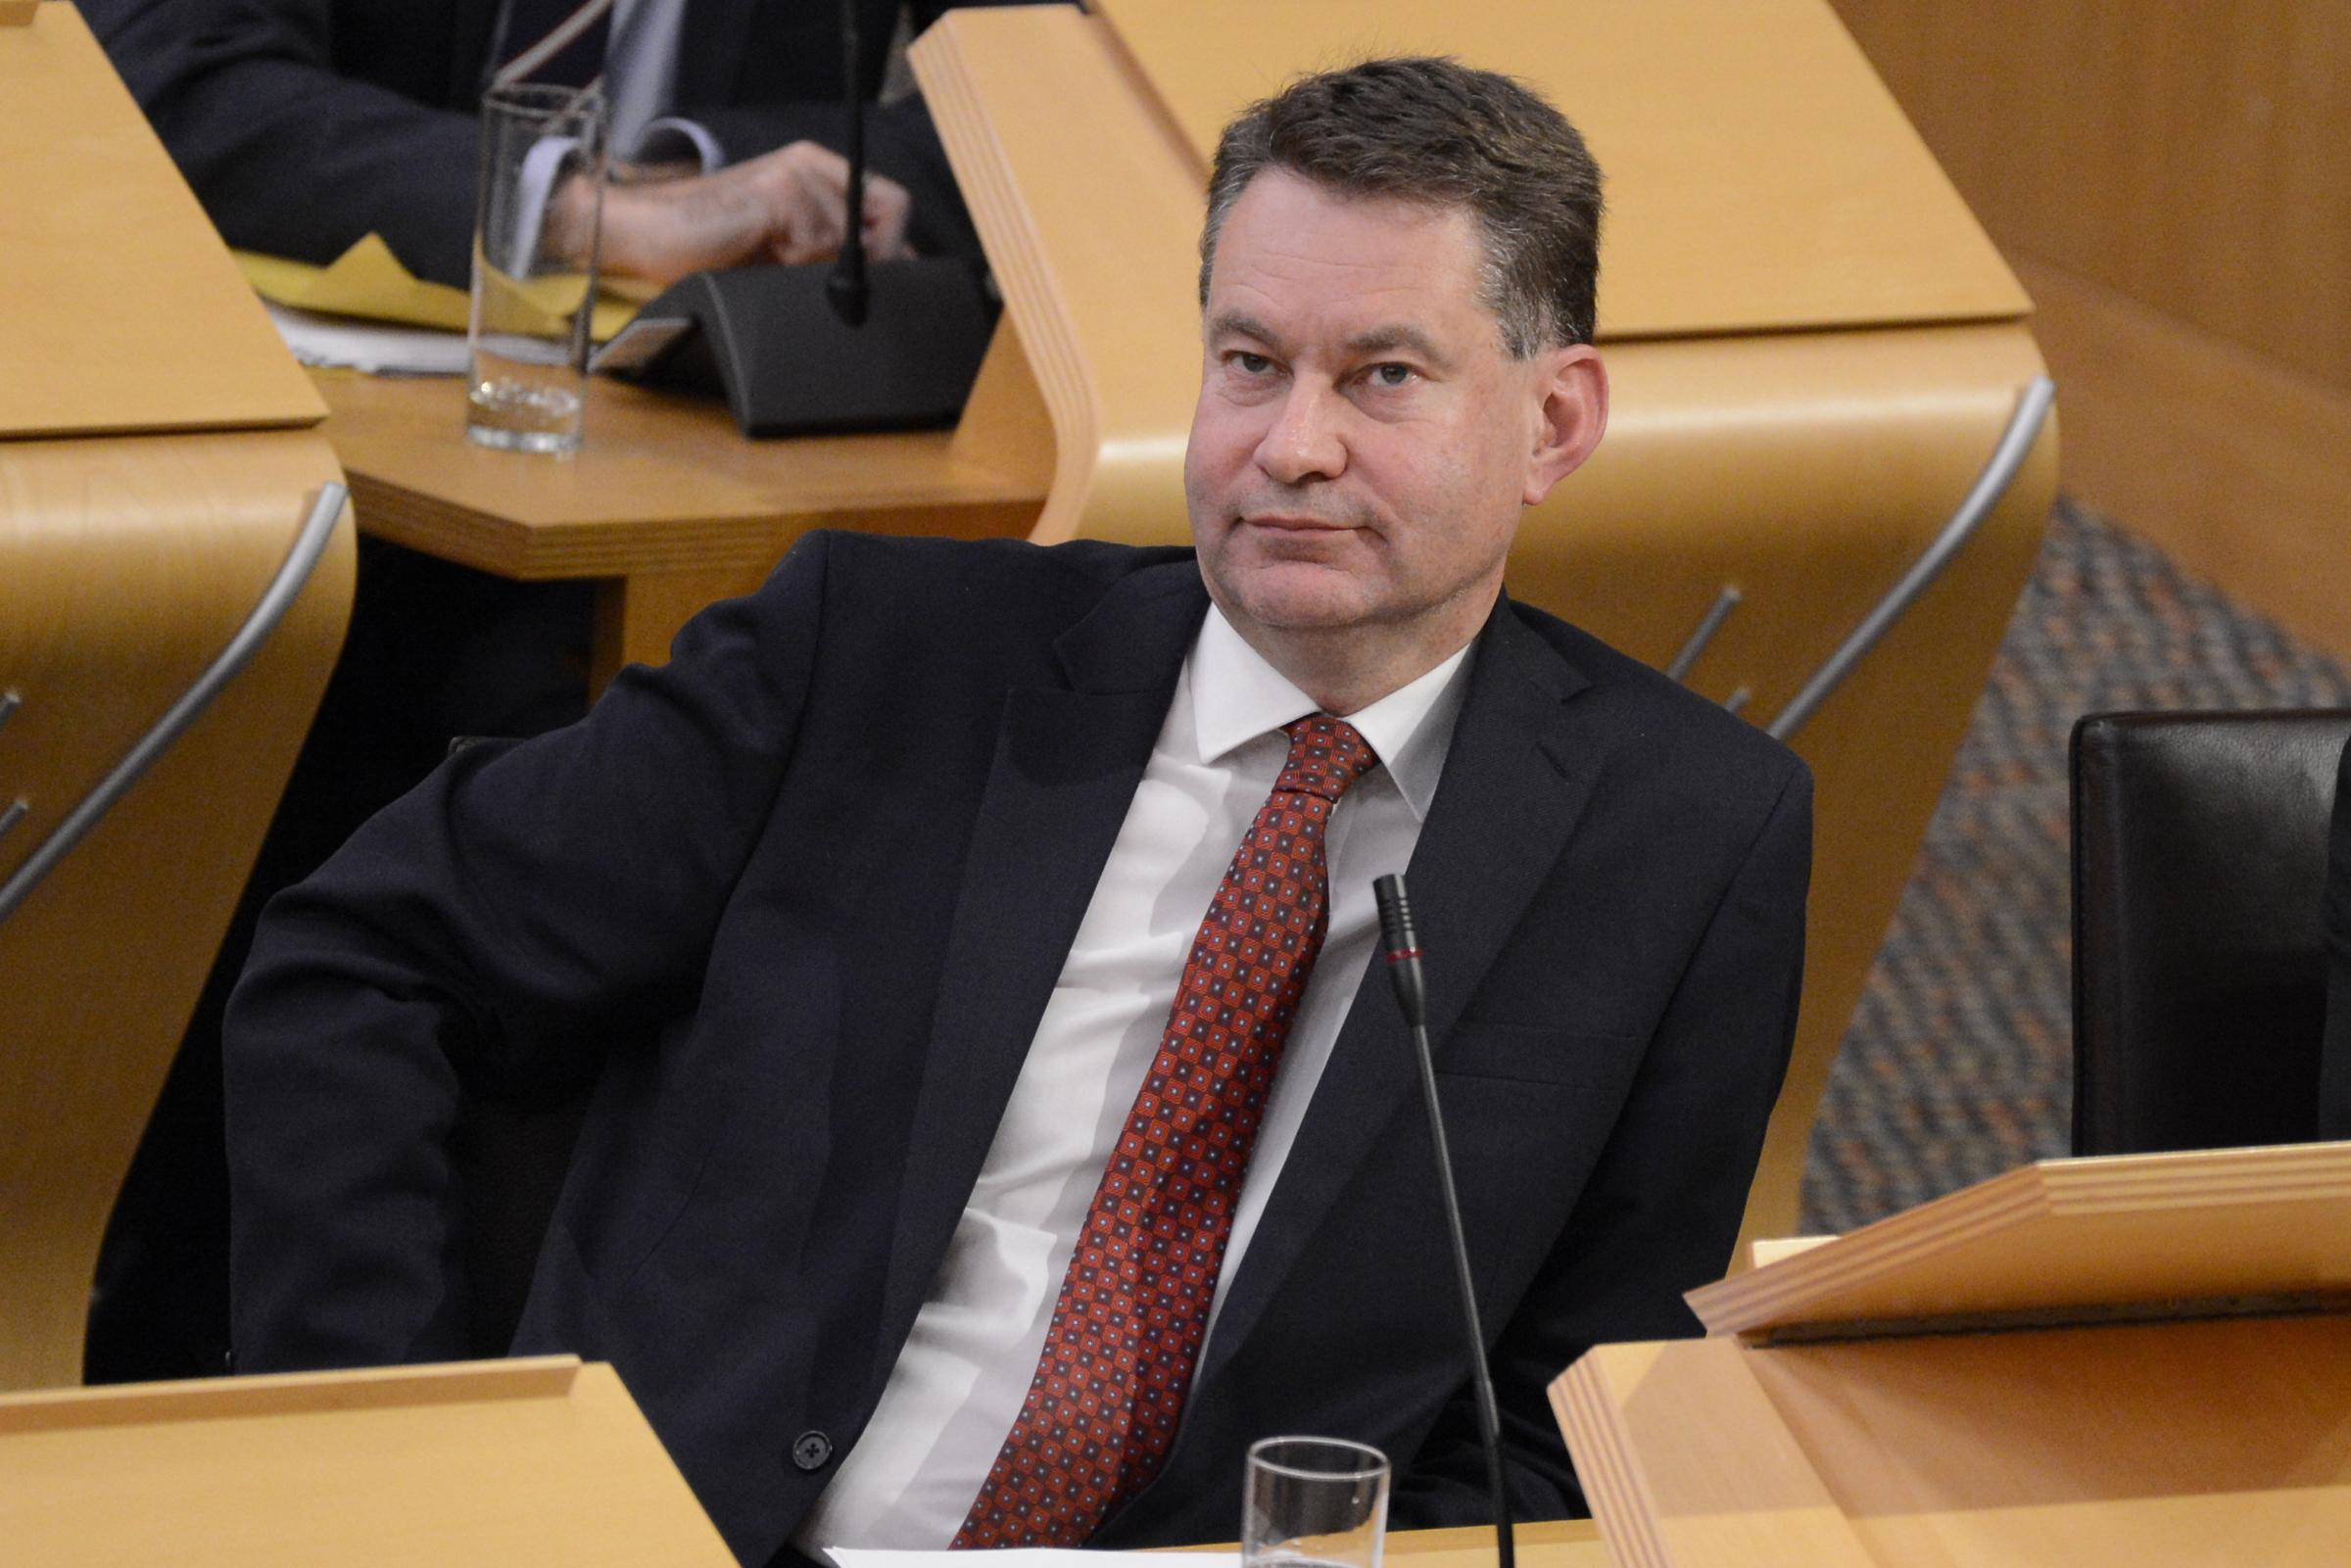 Tory MSP tries to rewrite law and exempt his own car from pollution levy